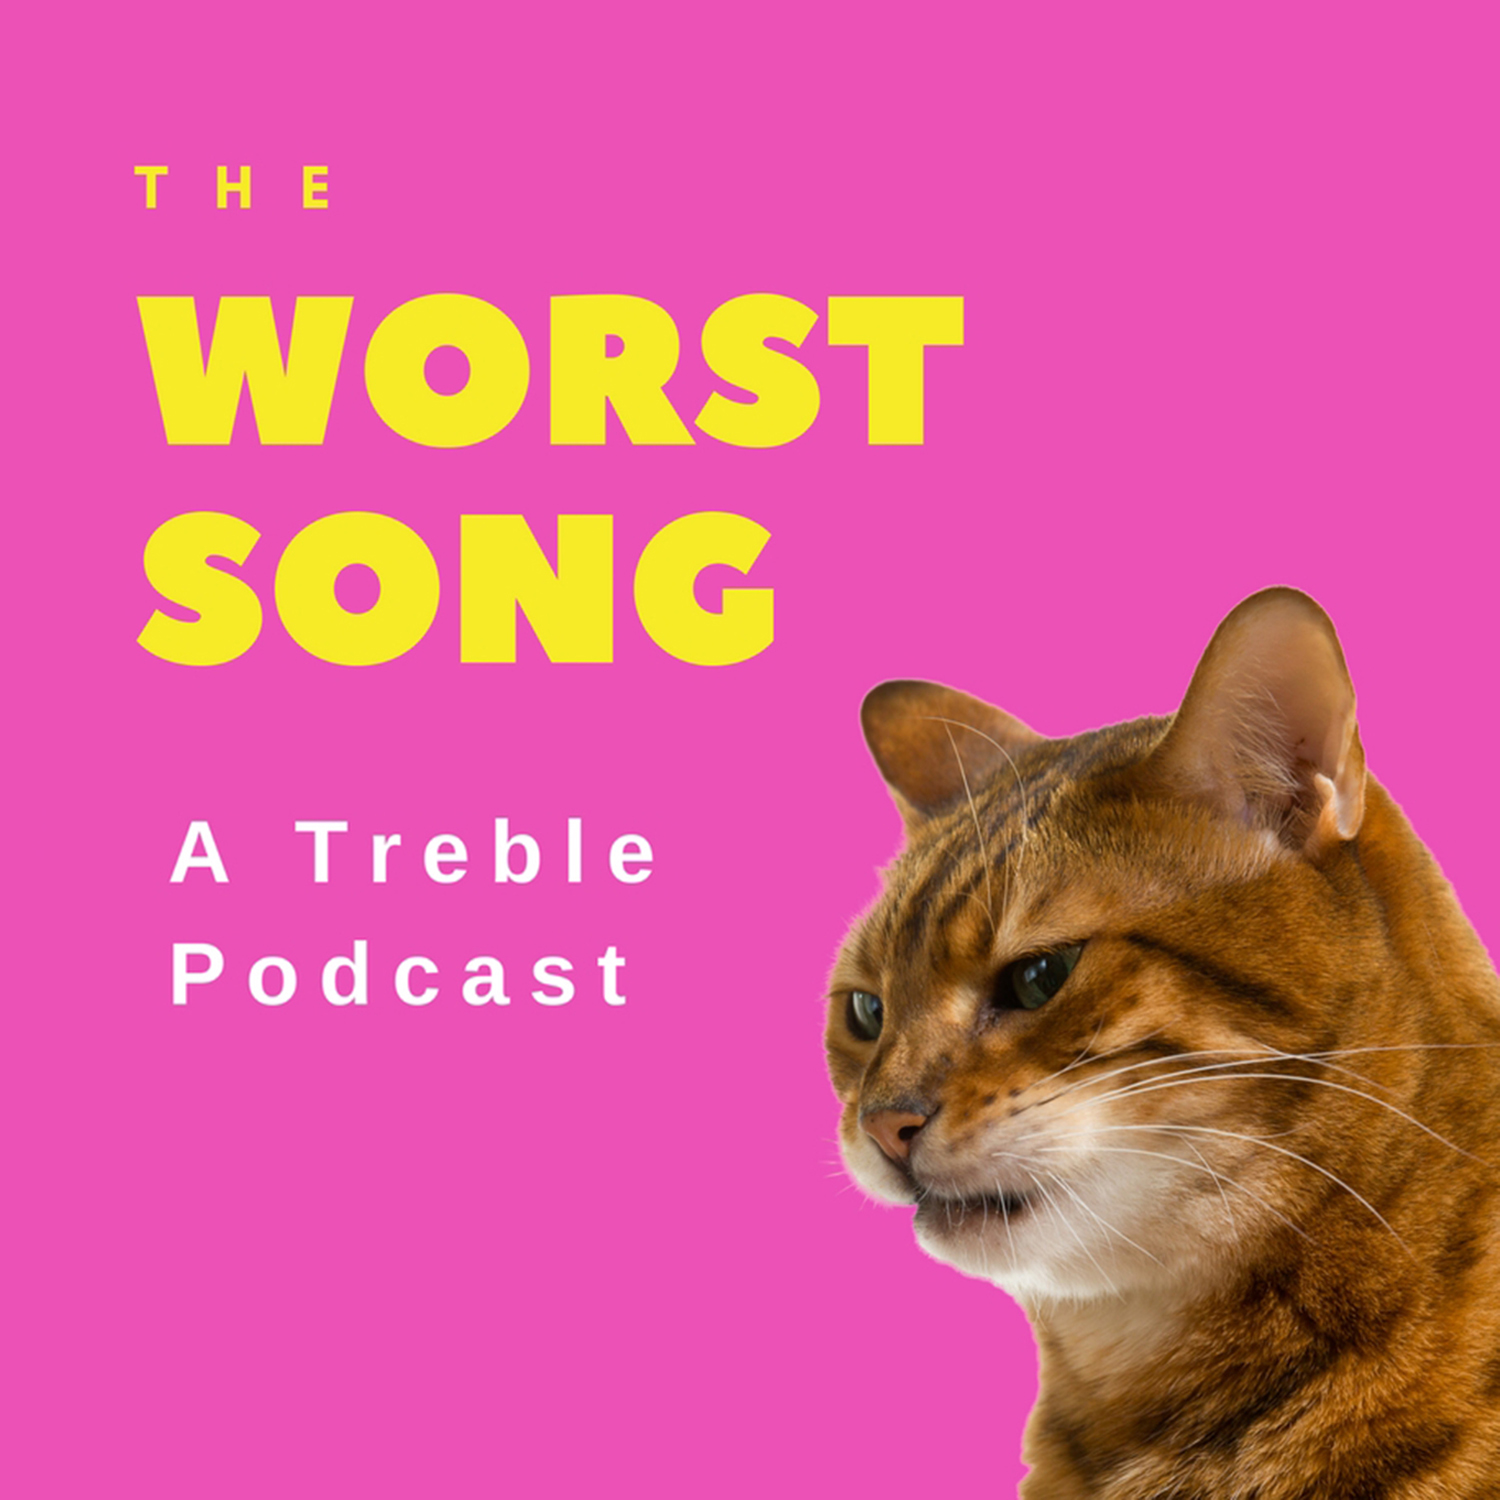 The Worst Song: A Treble Podcast show art